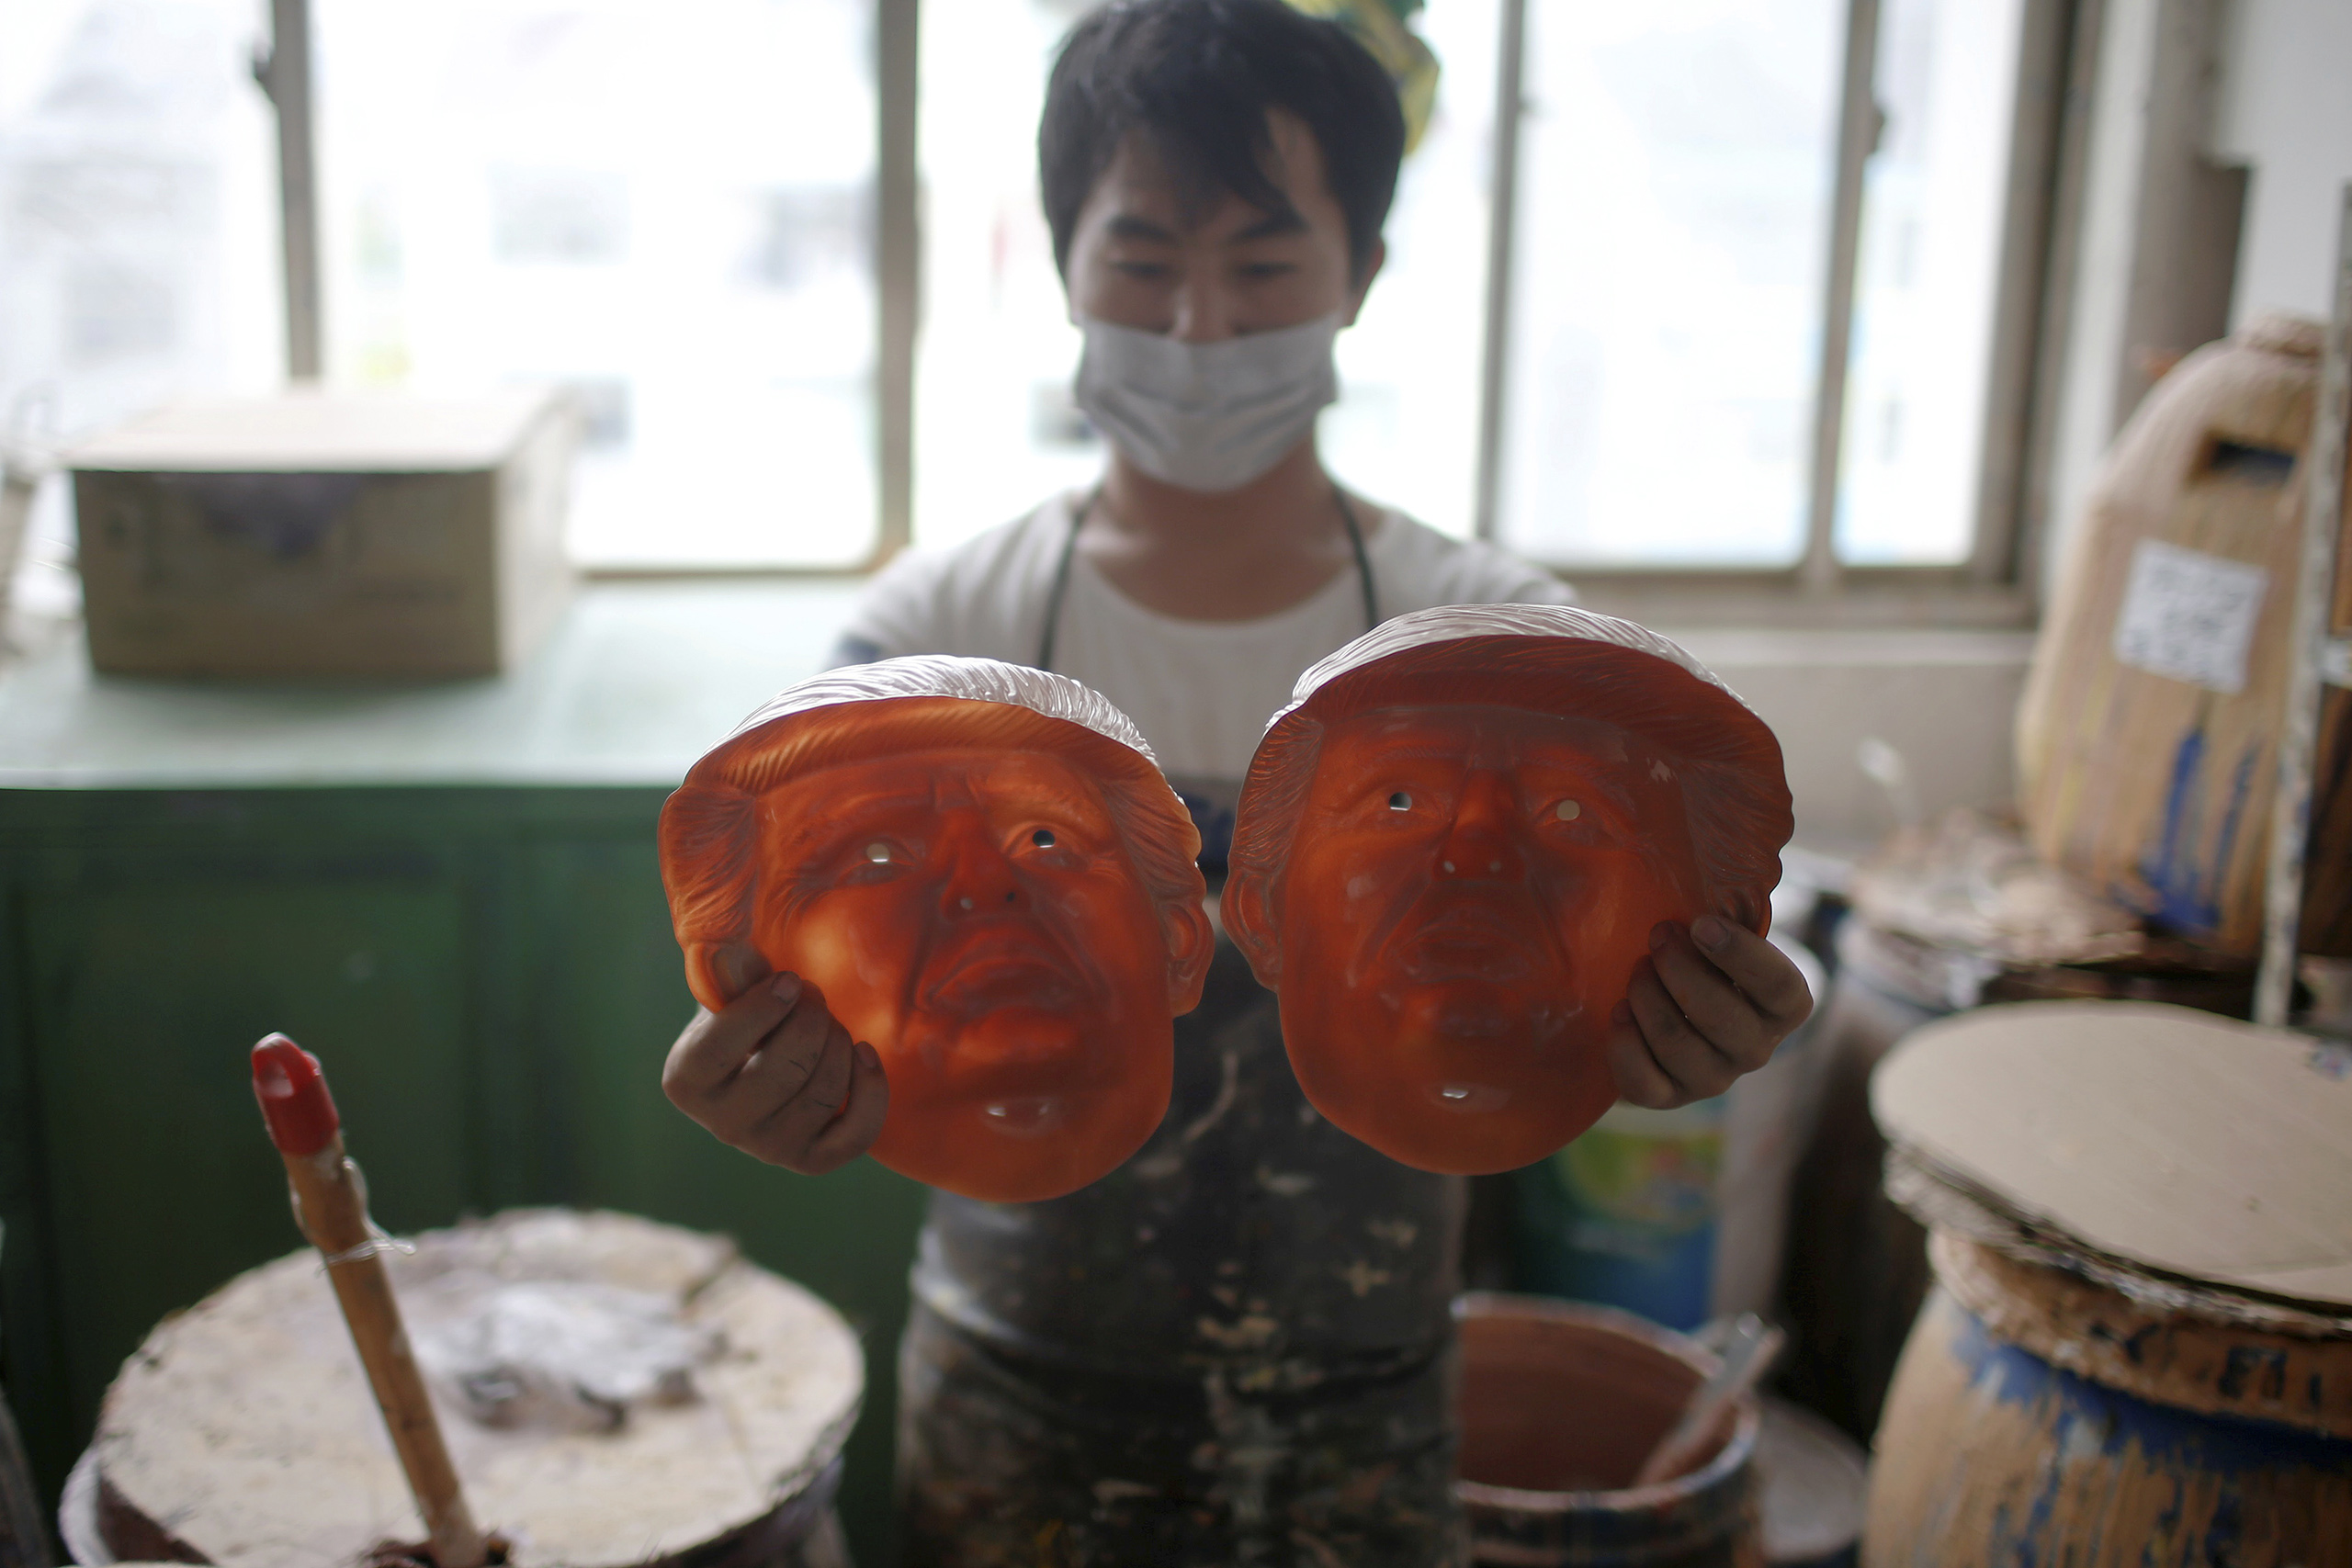 A worker checks masks of Republican presidential candidate Donald Trump at Jinhua Partytime Latex Art and Crafts Factory in Jinhua, Zhejiang Province, China, May 25, 2016.